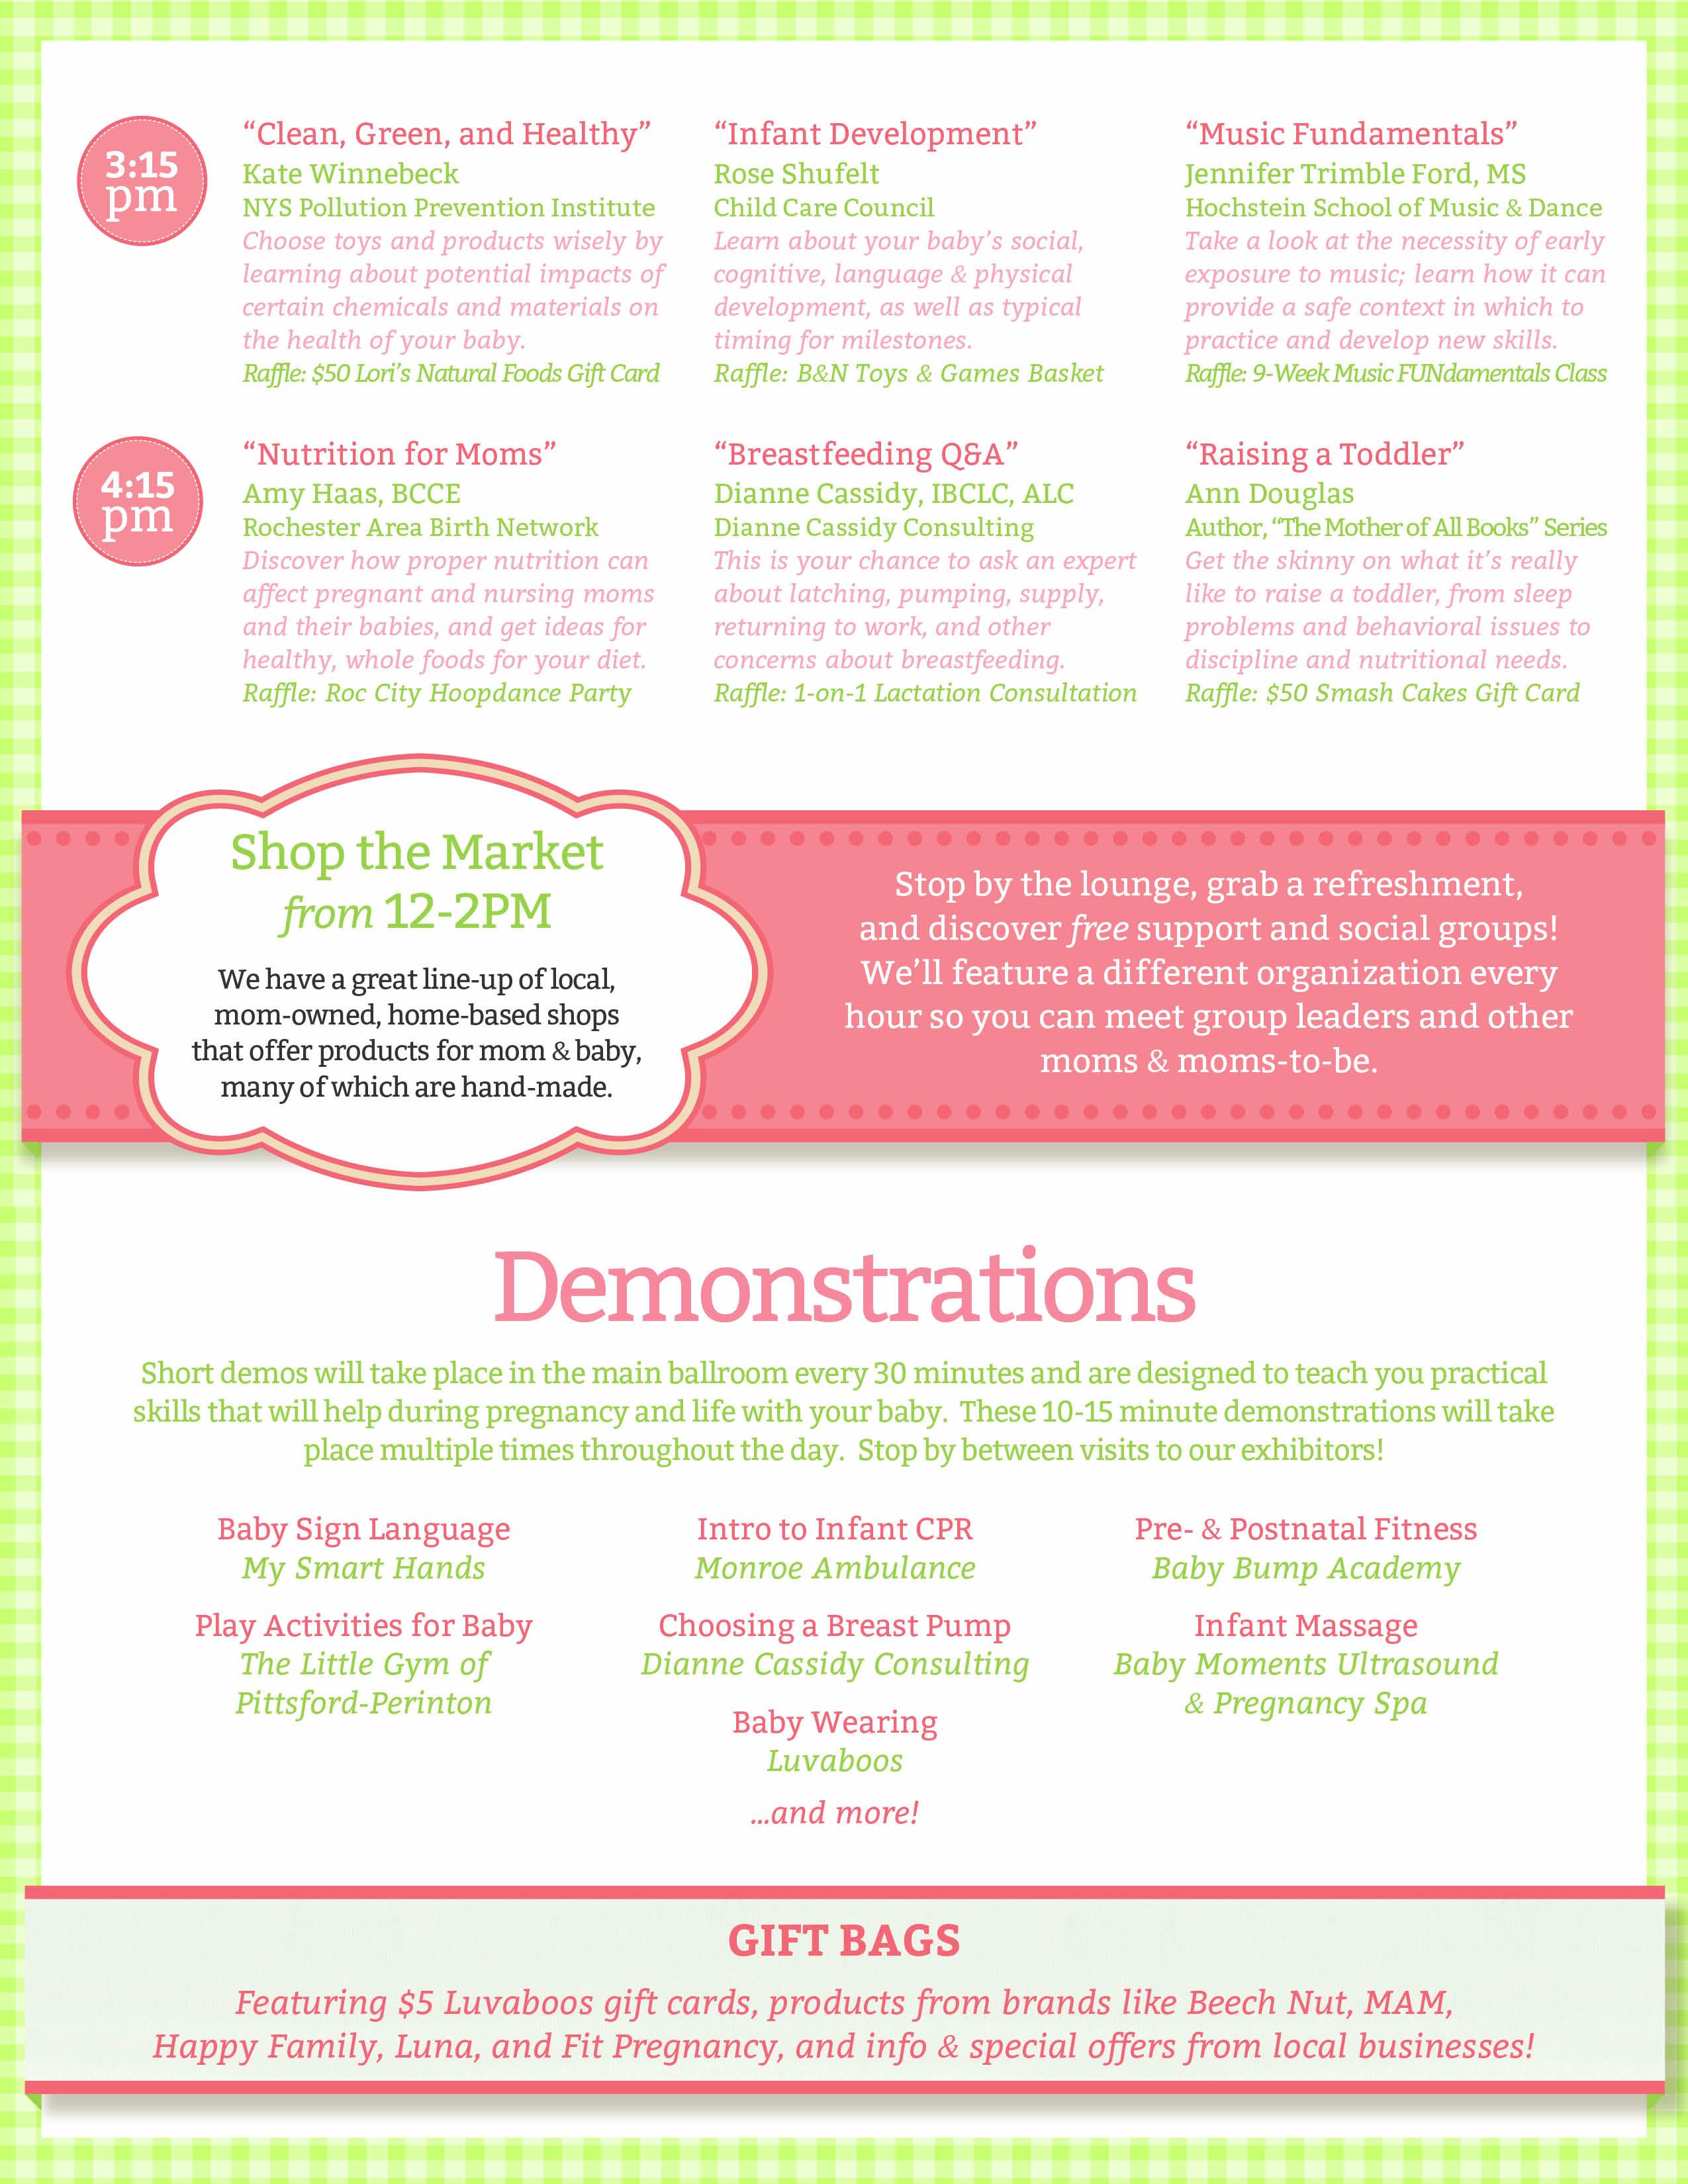 Beyond the Bump 2013 Event Overview (page 3)